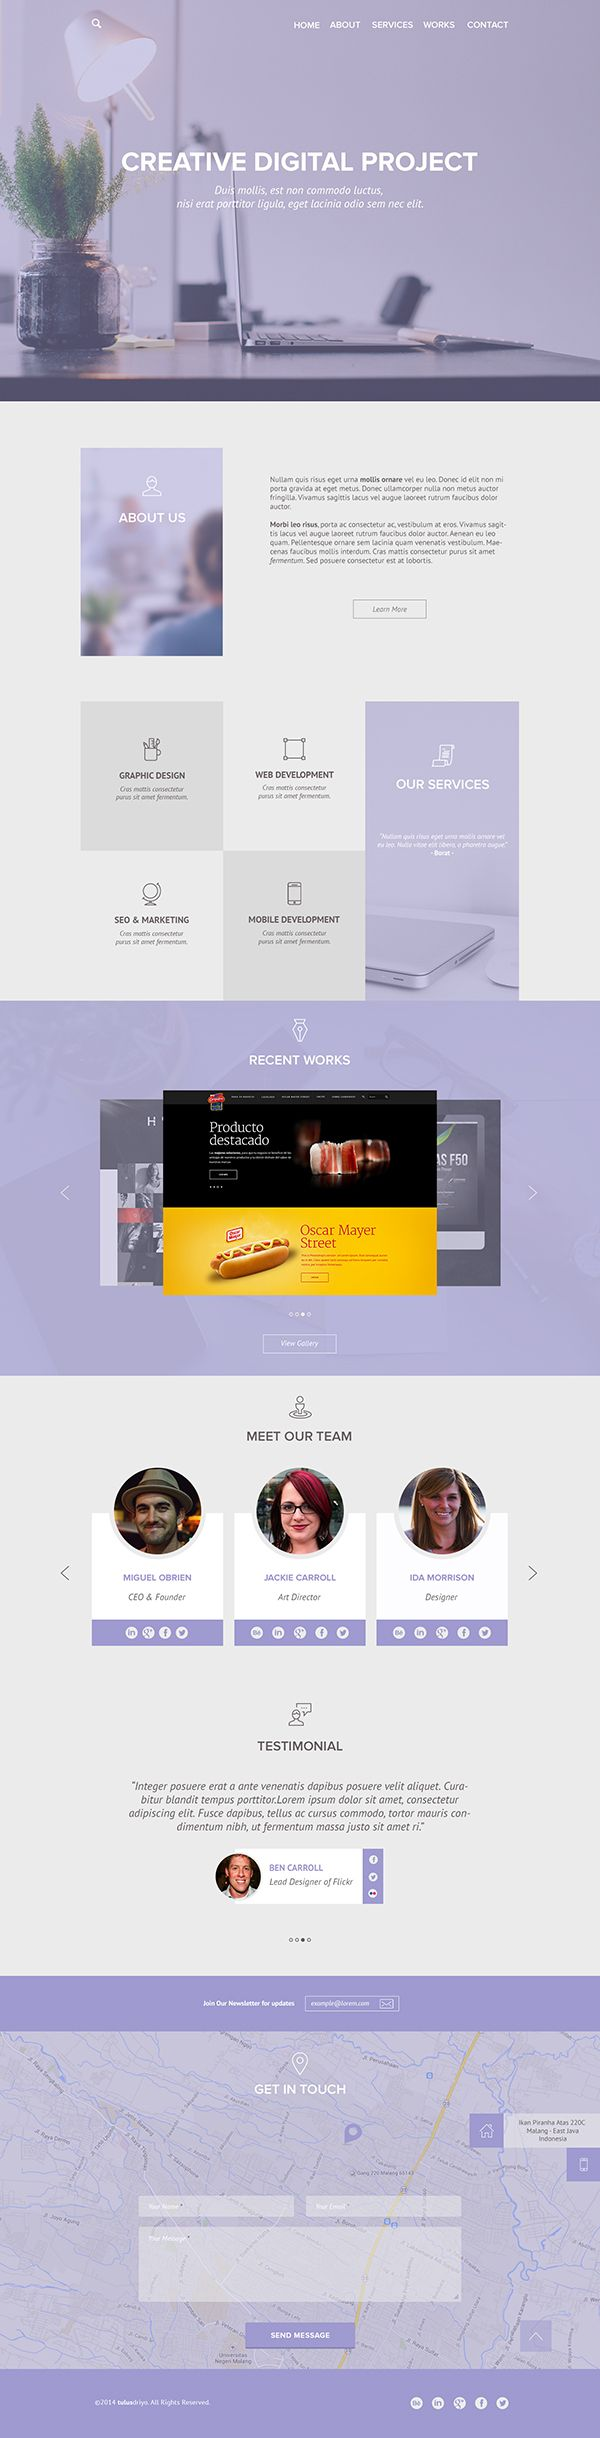 PSD Template | Clean & Flat Web Portfolio Design on Behance